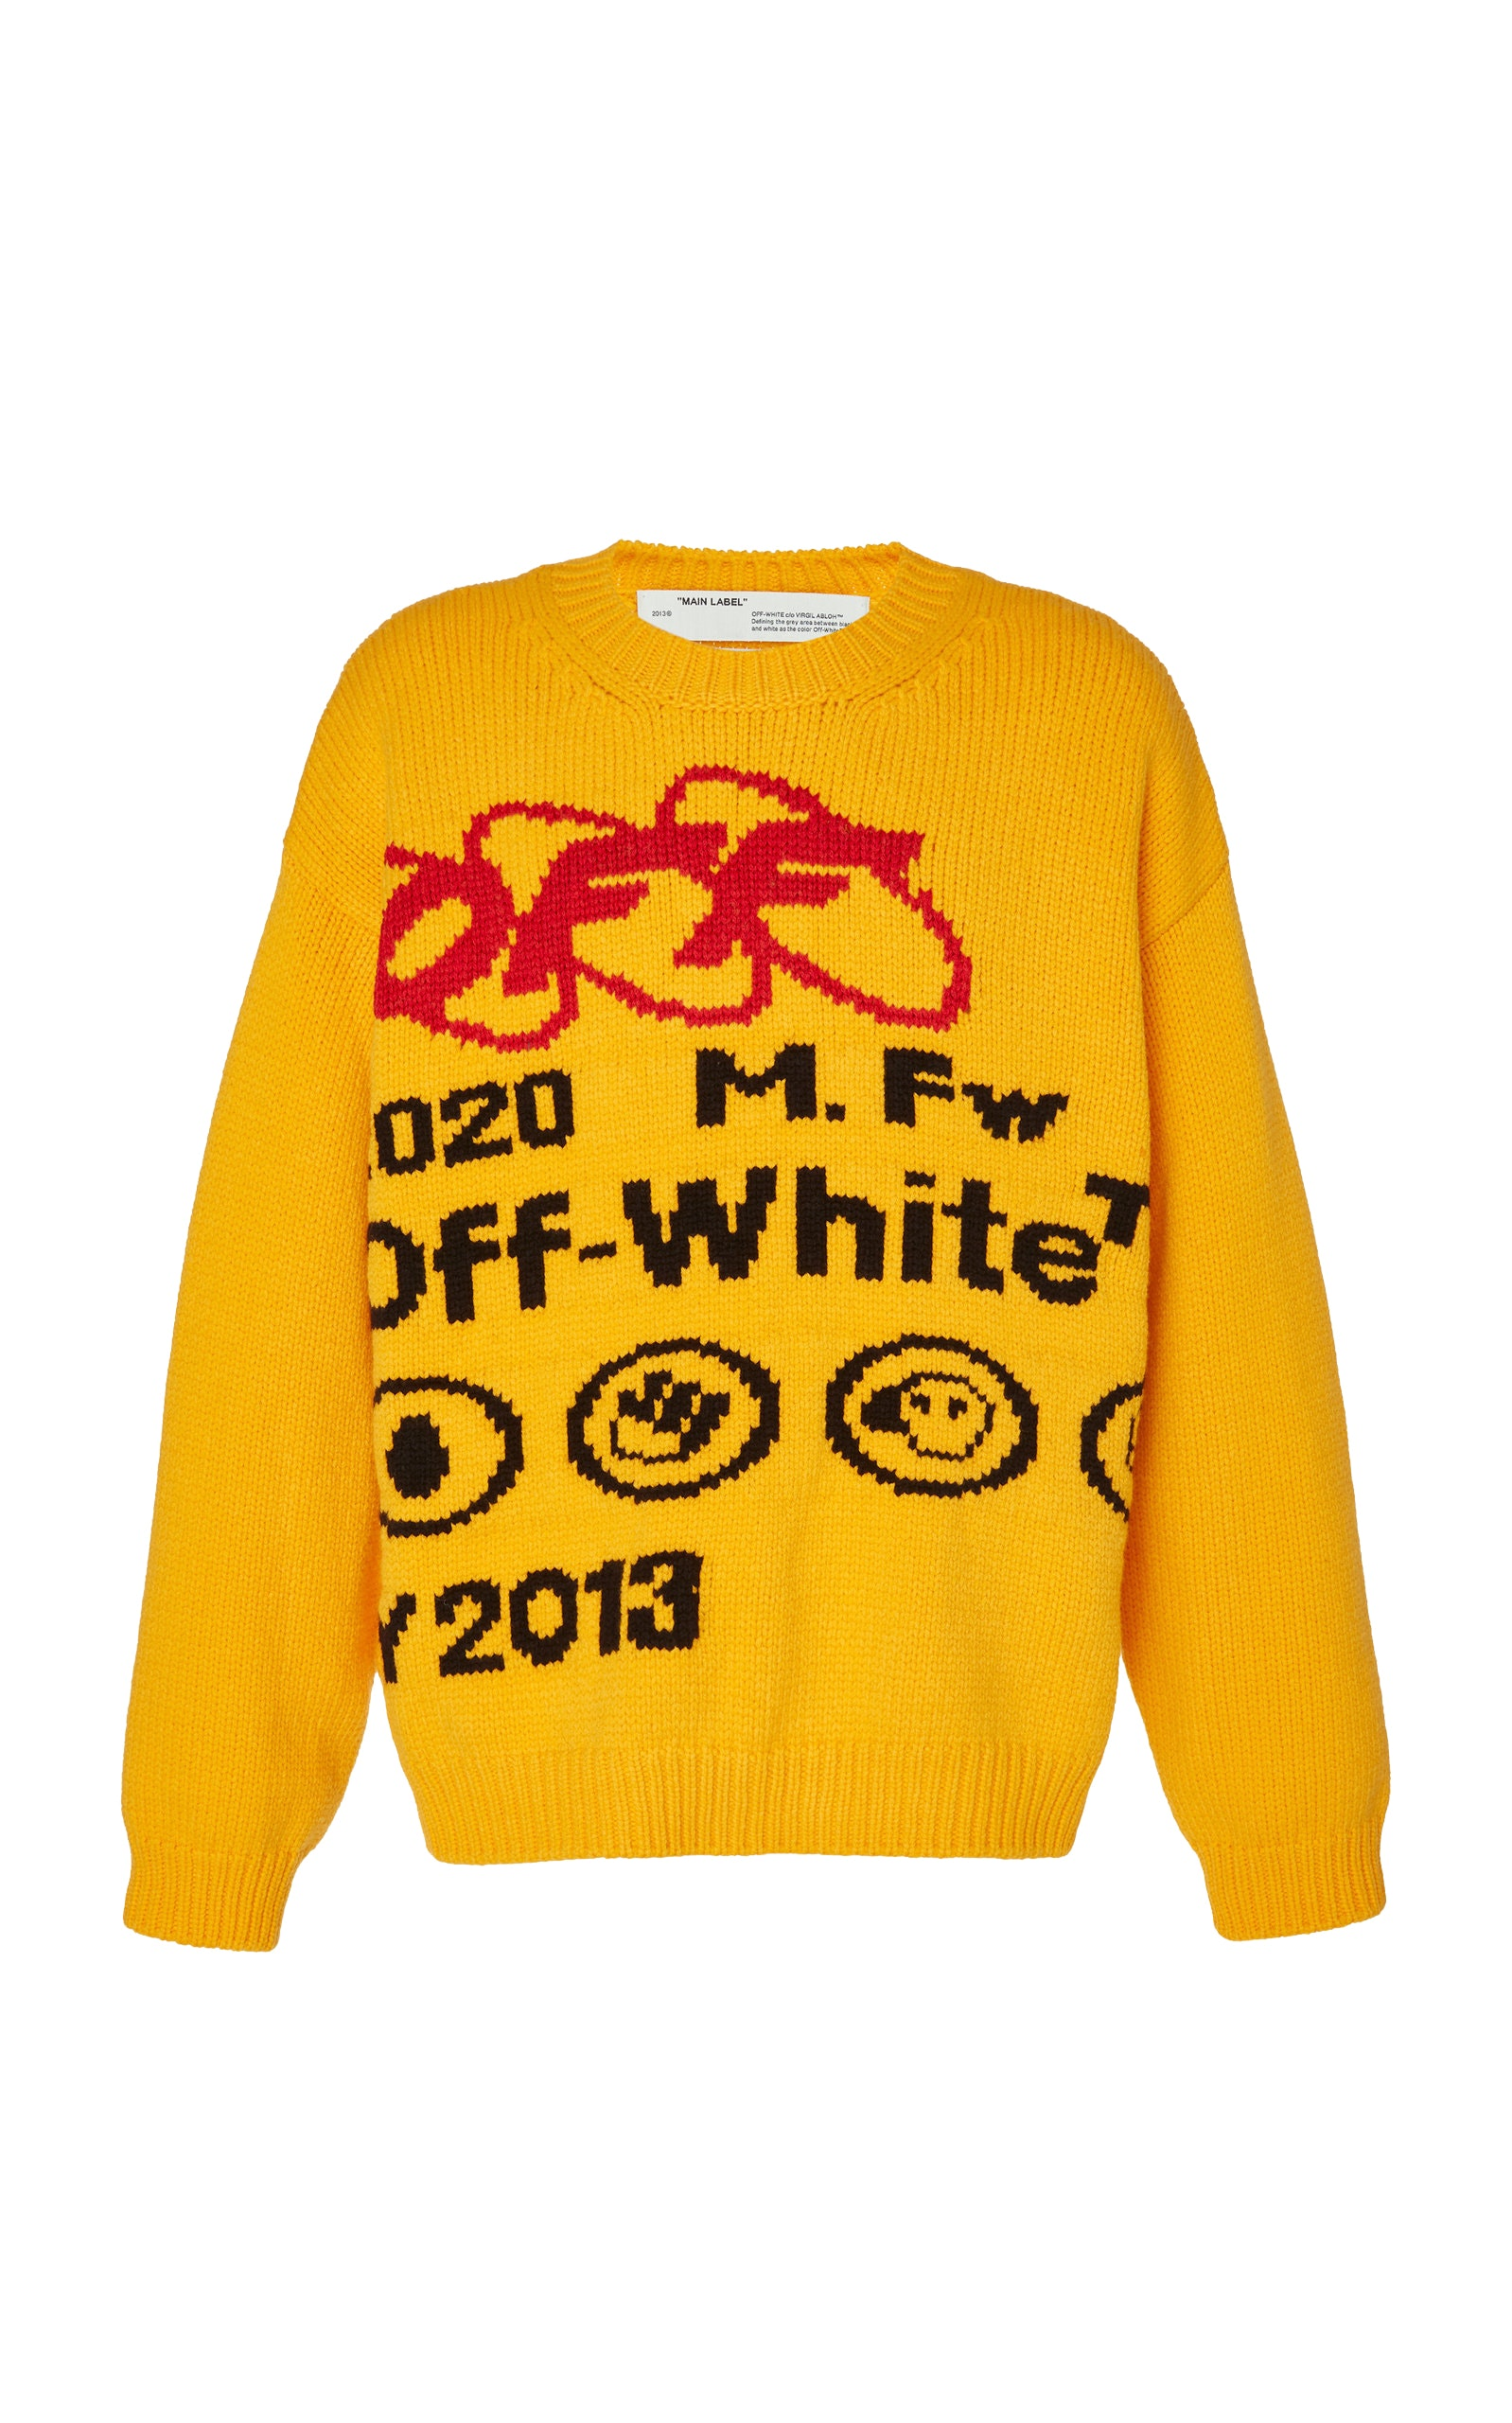 Off White Industrial Y013 Sweater Yellow/Black by Stock X